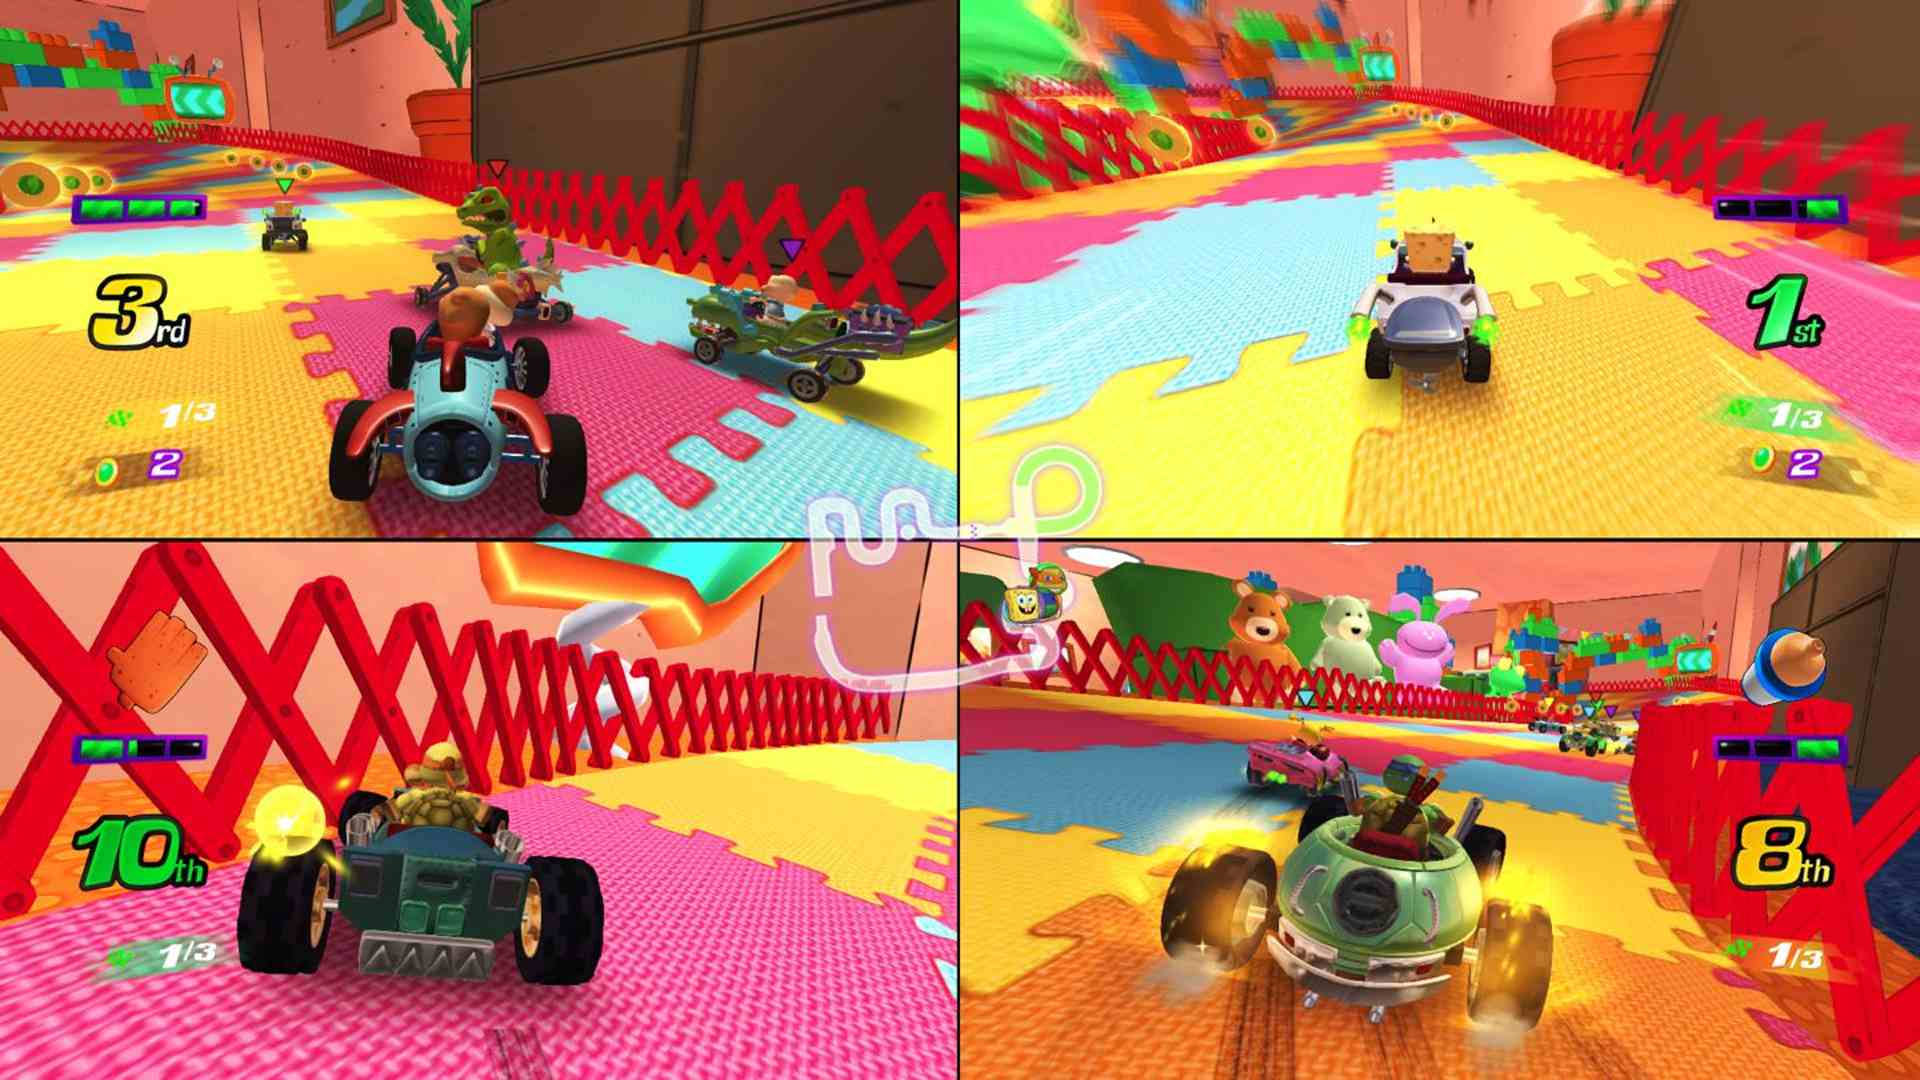 Nickelodeon: Kart Racers video game on Xbox One, Nintendo Switch, and PS4.